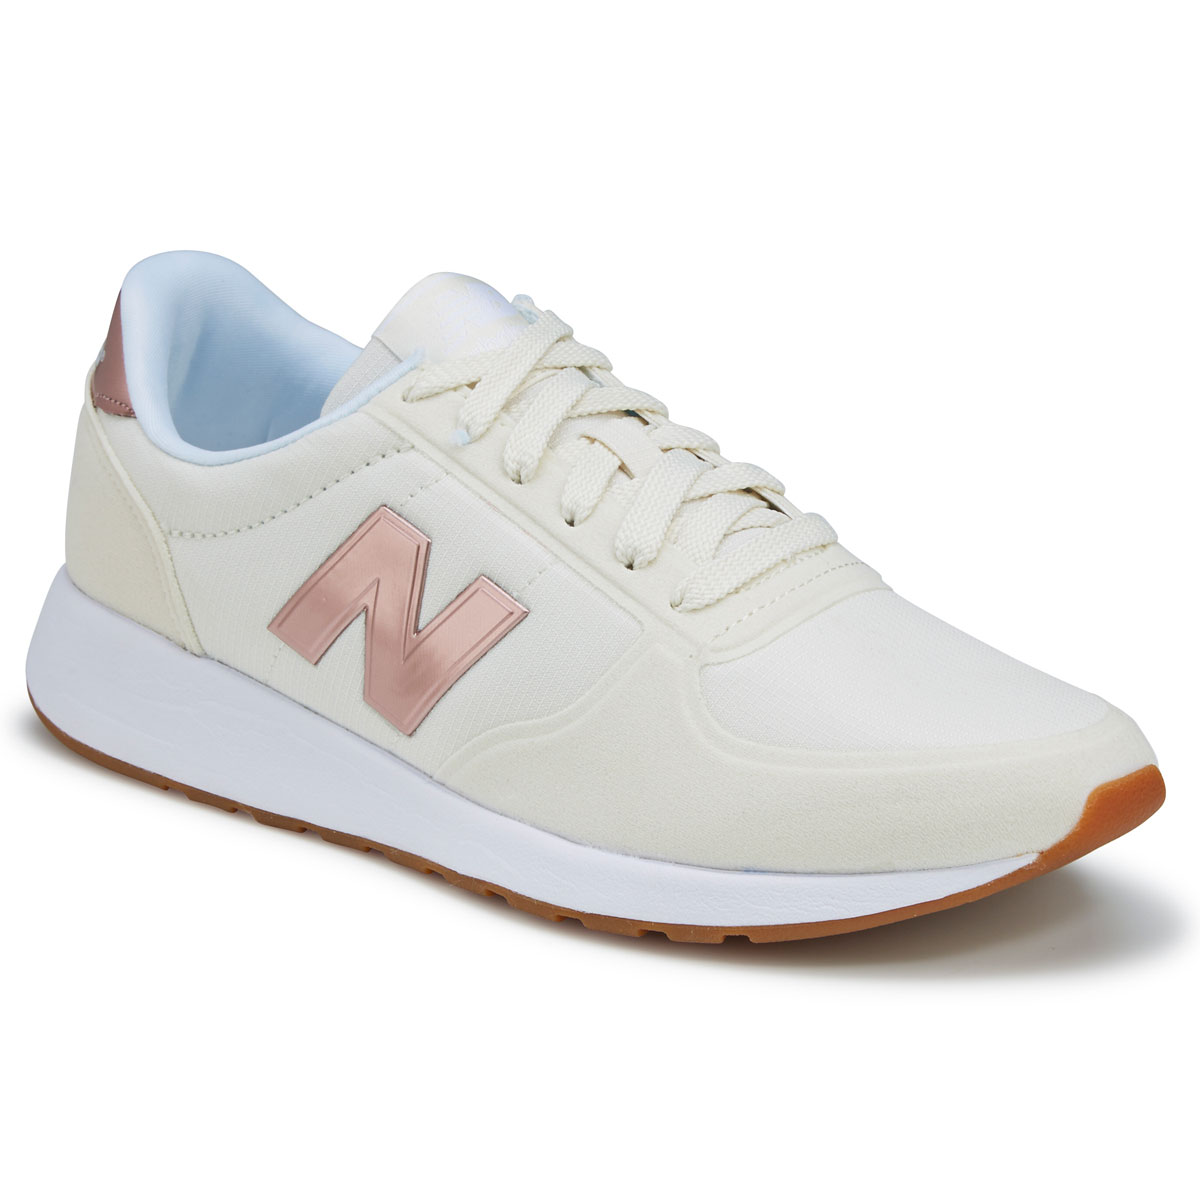 New Balance Women's 215V1 Sneakers - White, 6.5